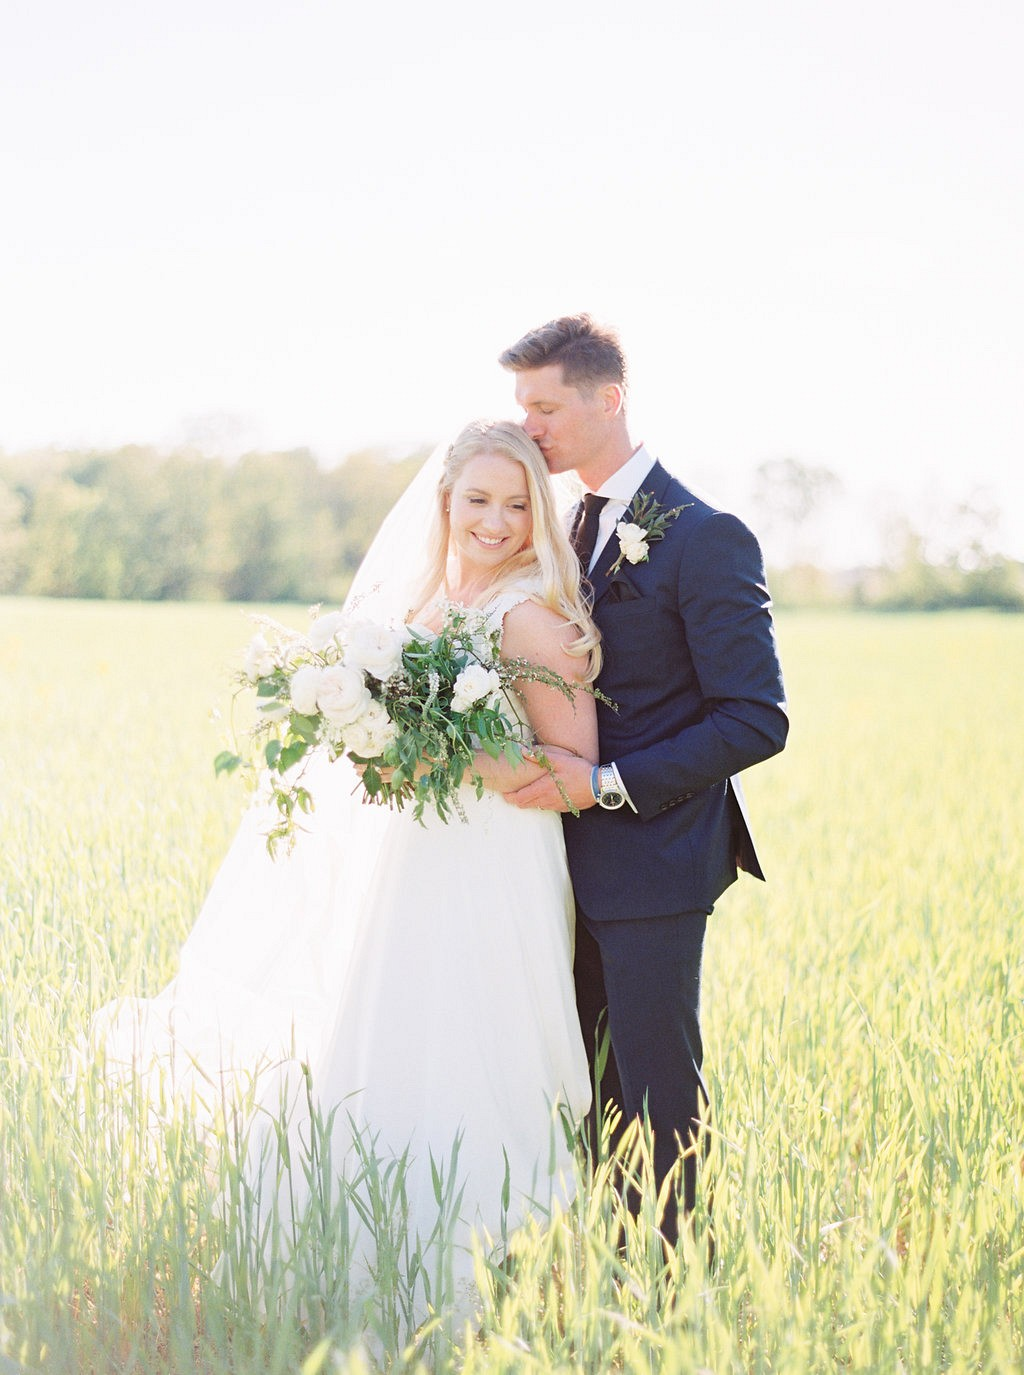 Bride and groom | Heartfelt and Nostalgic Indiana Barn Wedding by Renee Lemaire | Wedding Sparrow fine art wedding blog